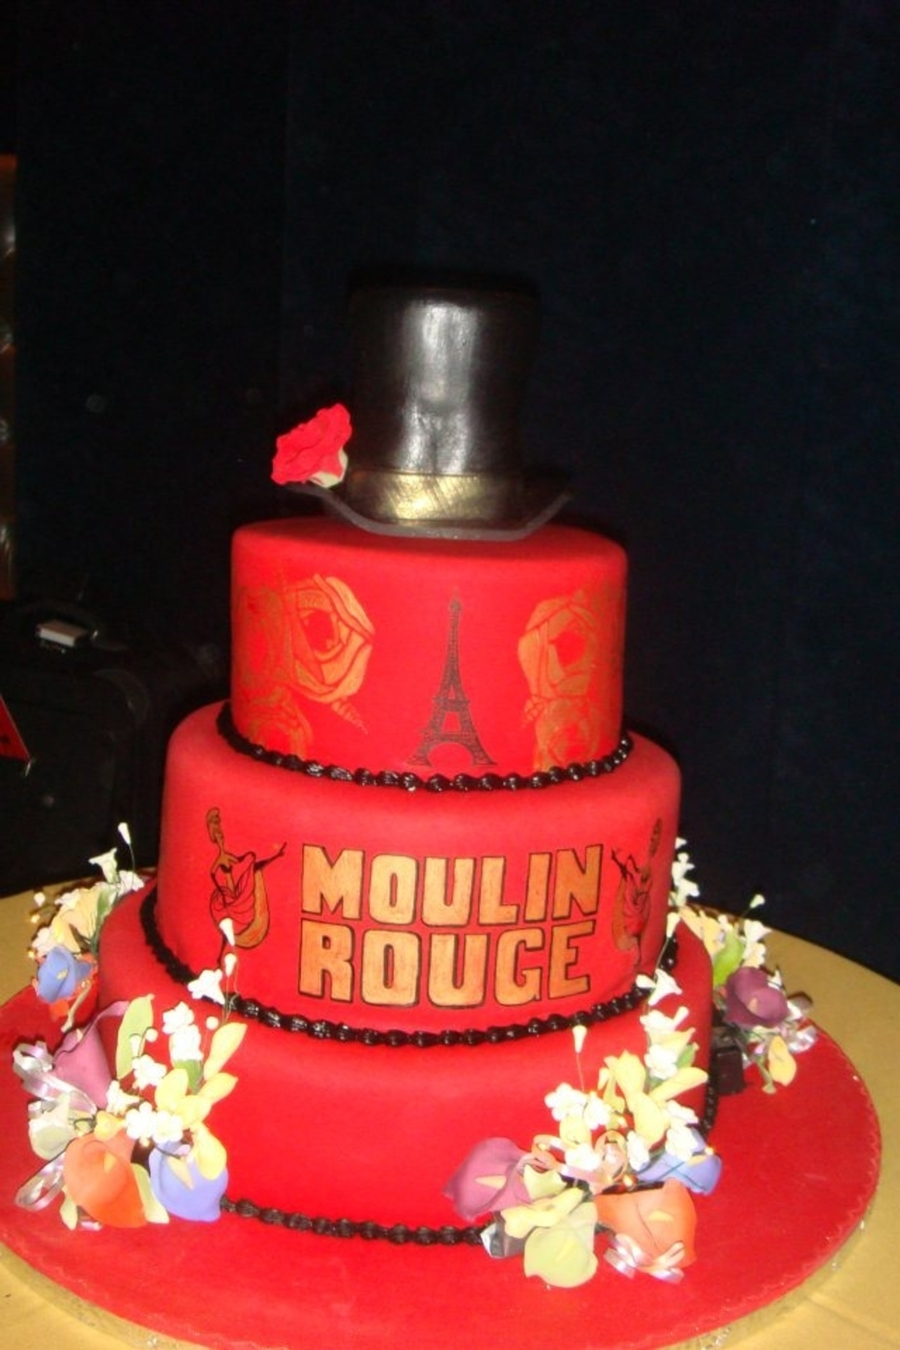 Moulin Rouge Custom Cake on Cake Central